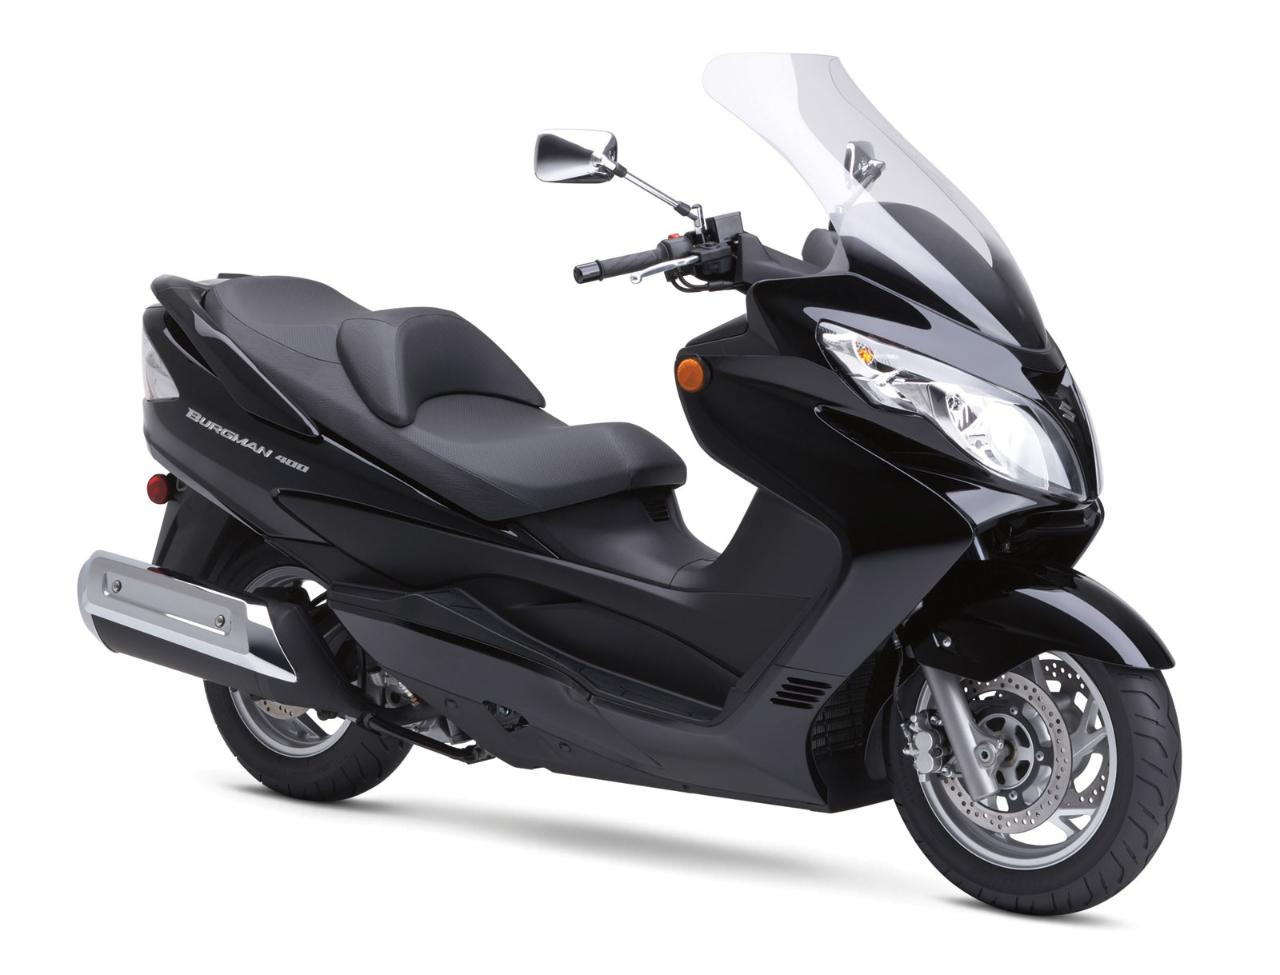 Suzuki Burgman 400cc Scooter Rental Motorcycle License Required